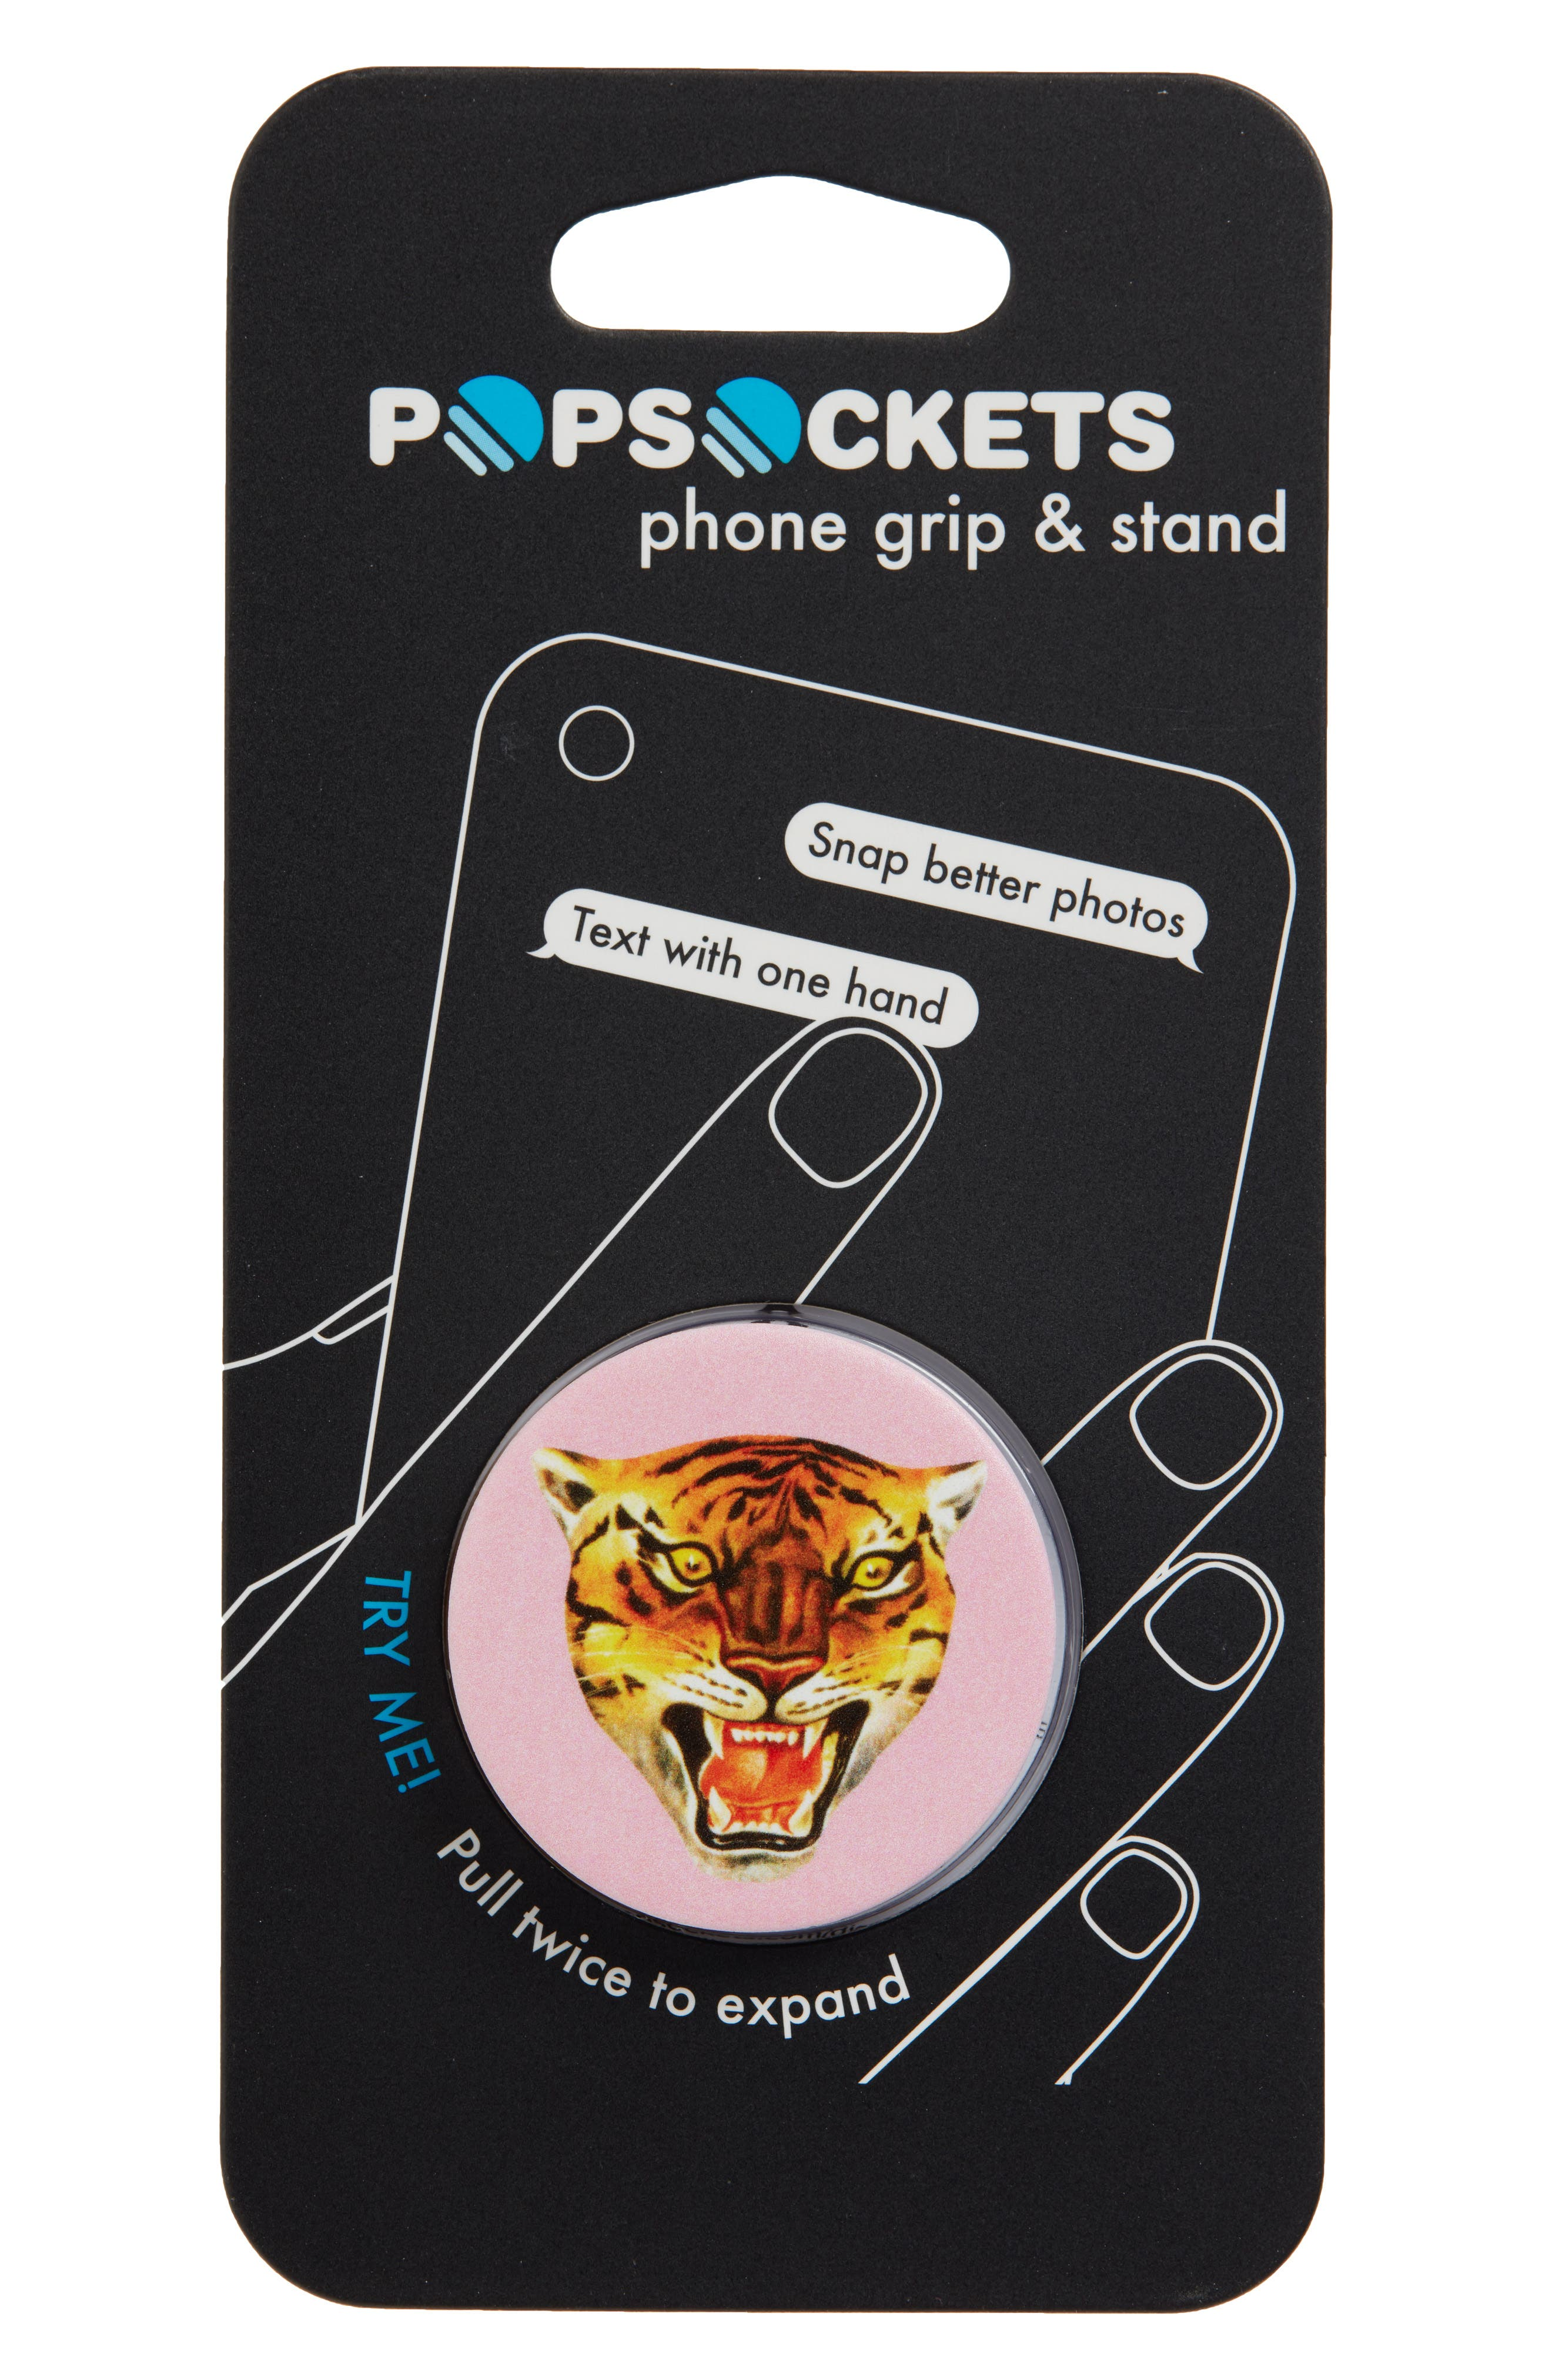 POPSOCKETS Cell Phone Grip & Stand, Main, color, 659